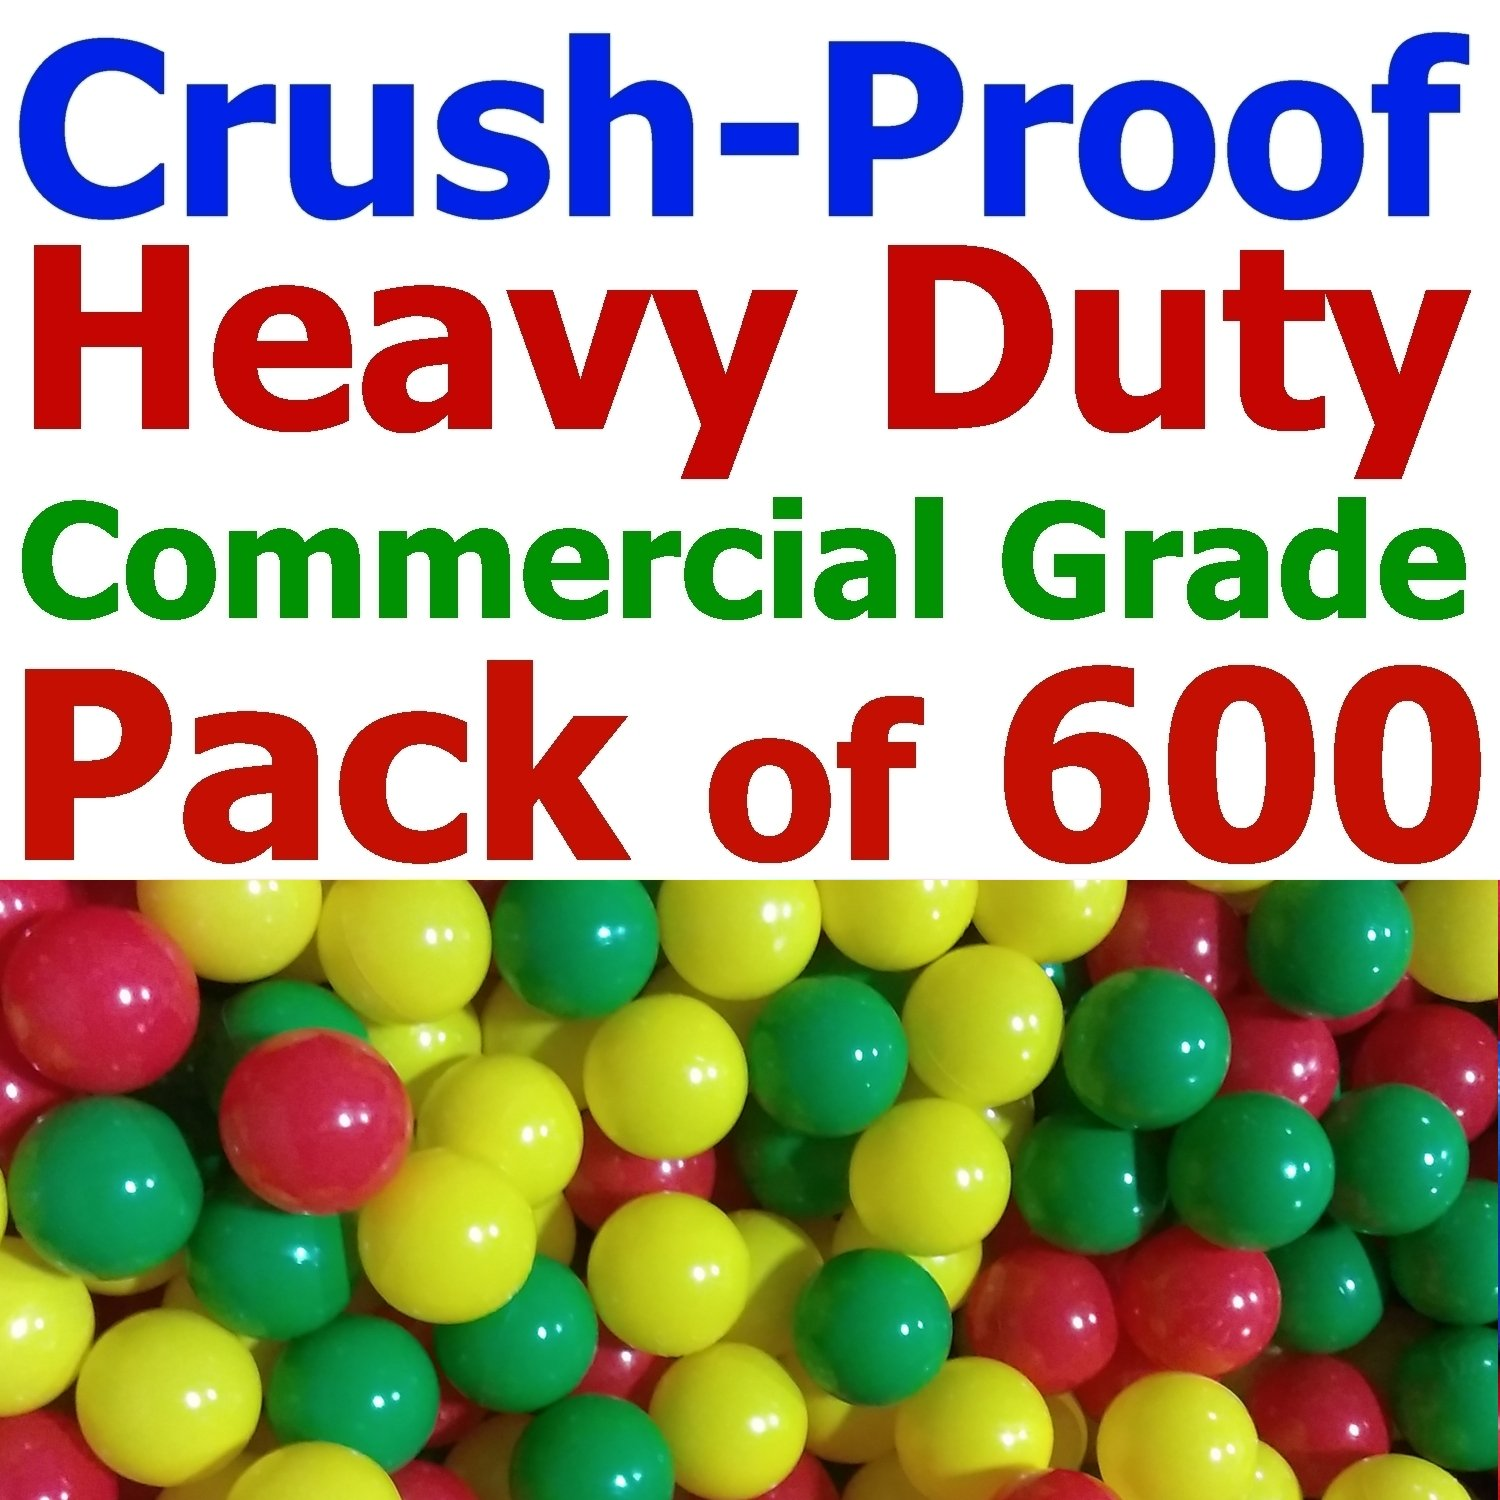 My Balls Pack of 600 Jumbo 3'' Red/Yellow/Green Colors of Season Heavy Duty Commercial Grade Crush-Proof Ball Pit Balls - Phthalate Free BPA Free Non-Recycled Plastic